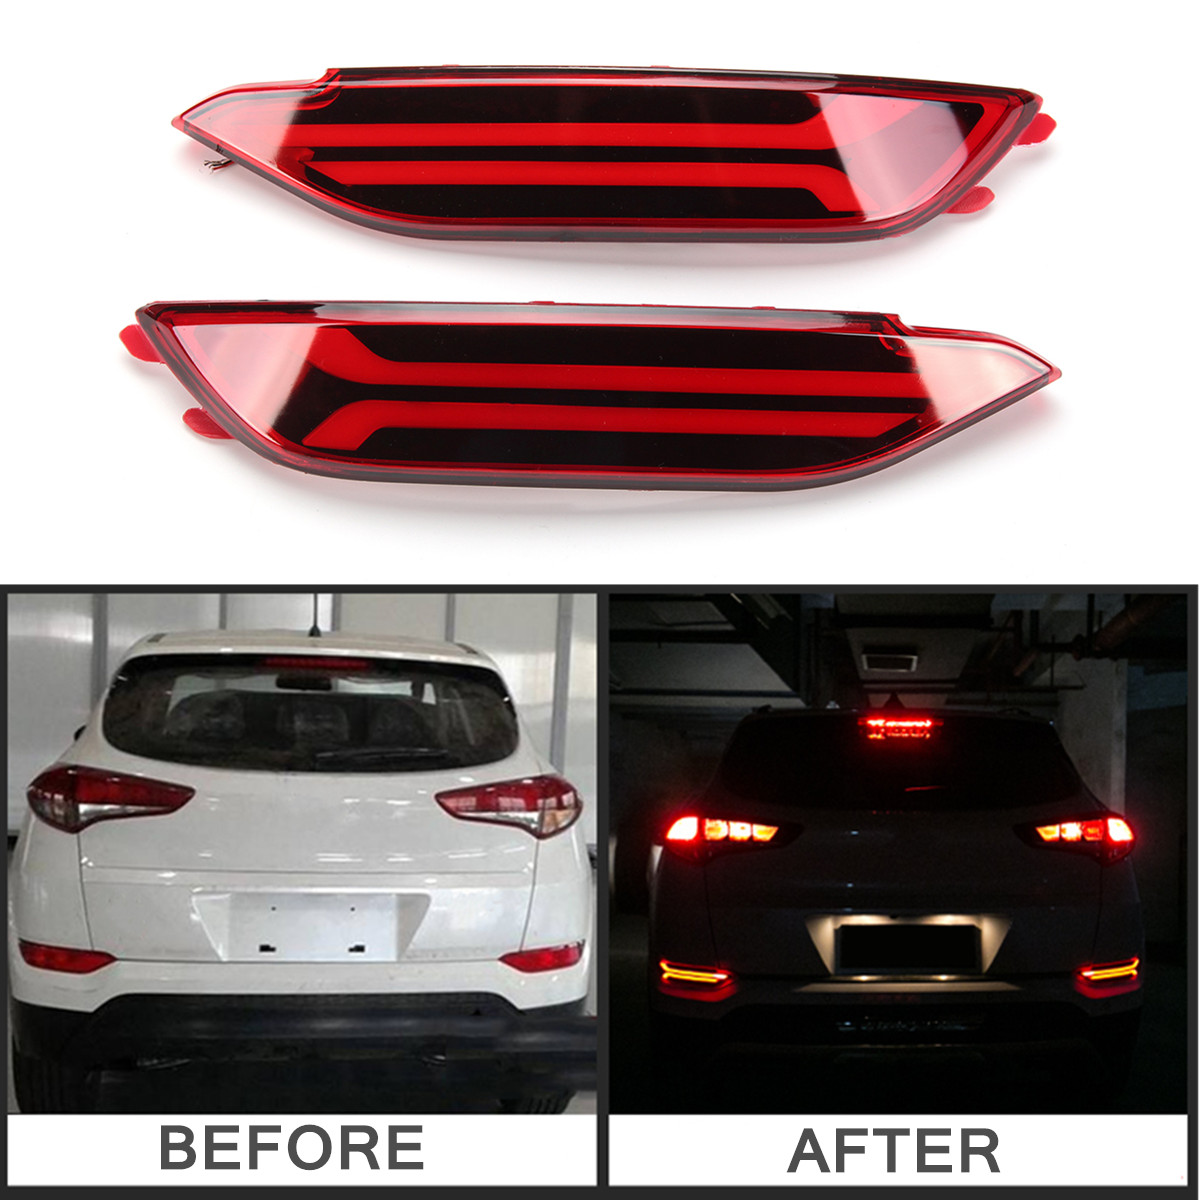 Pair LED Rear Bumper Reflector Lamp DRL Fog Driving Brake Lights for Hyundai Tucson 2017